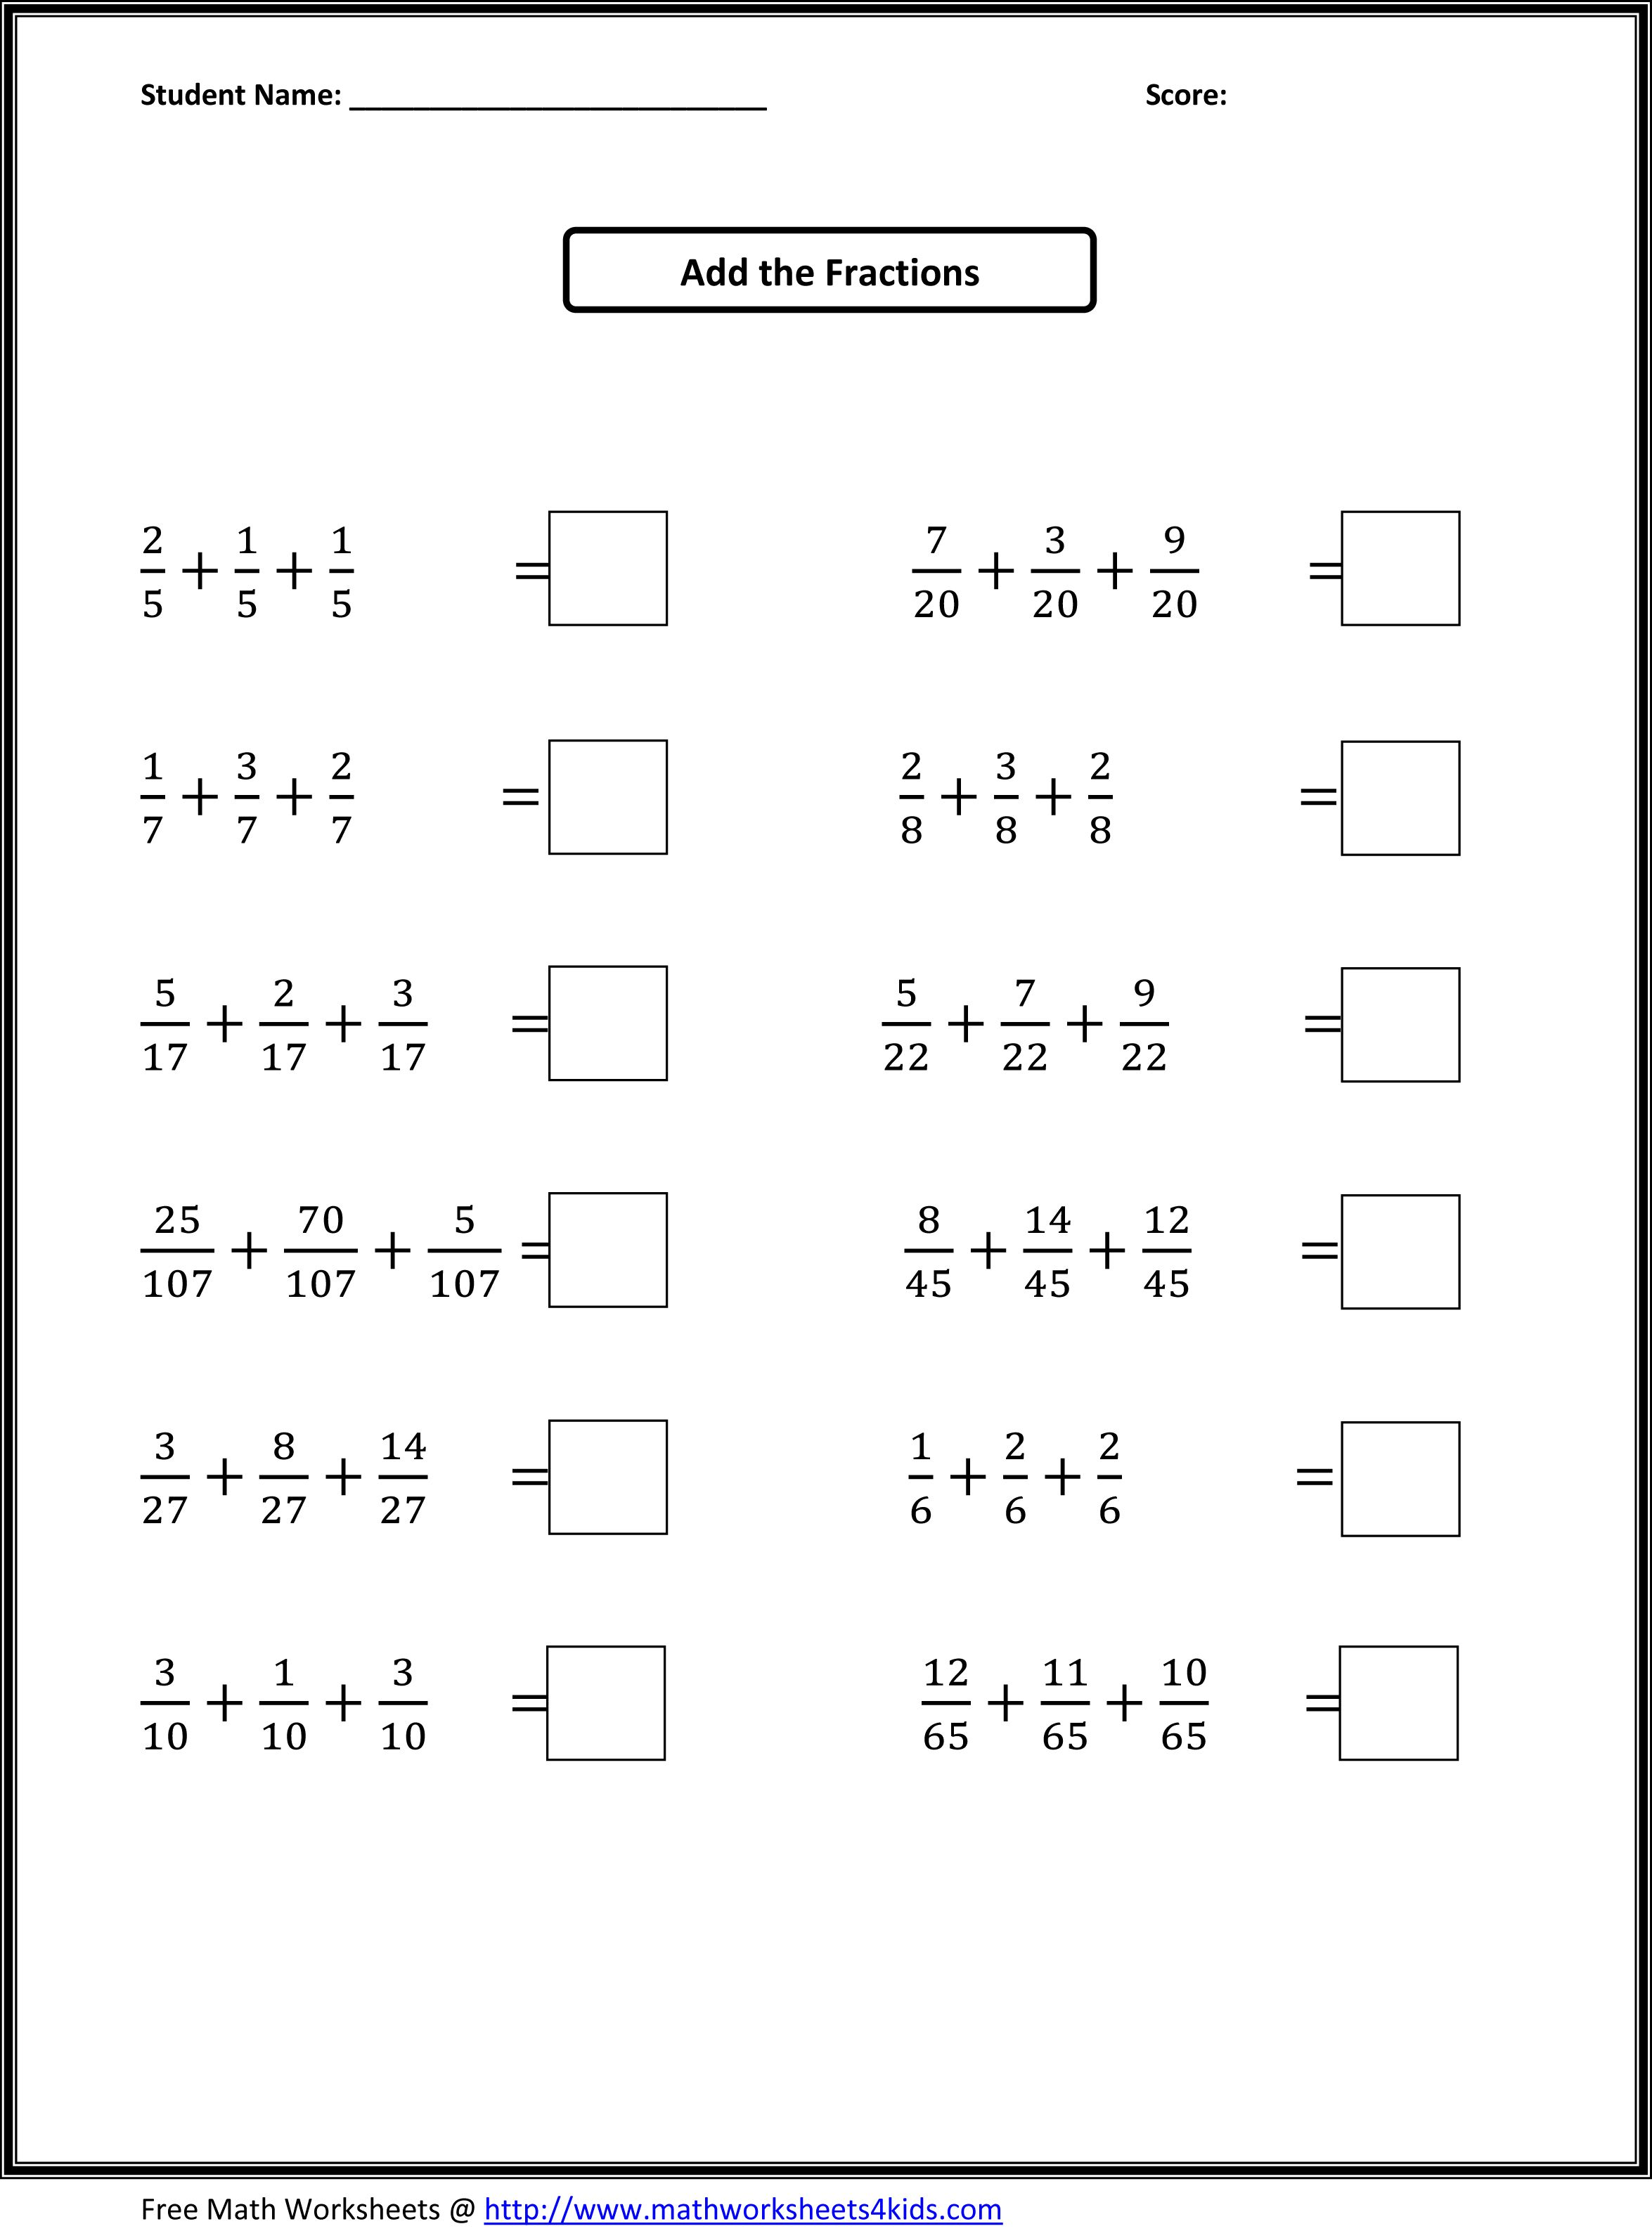 Printable Worksheets By Grade Level And By Skill Teaching Ideas